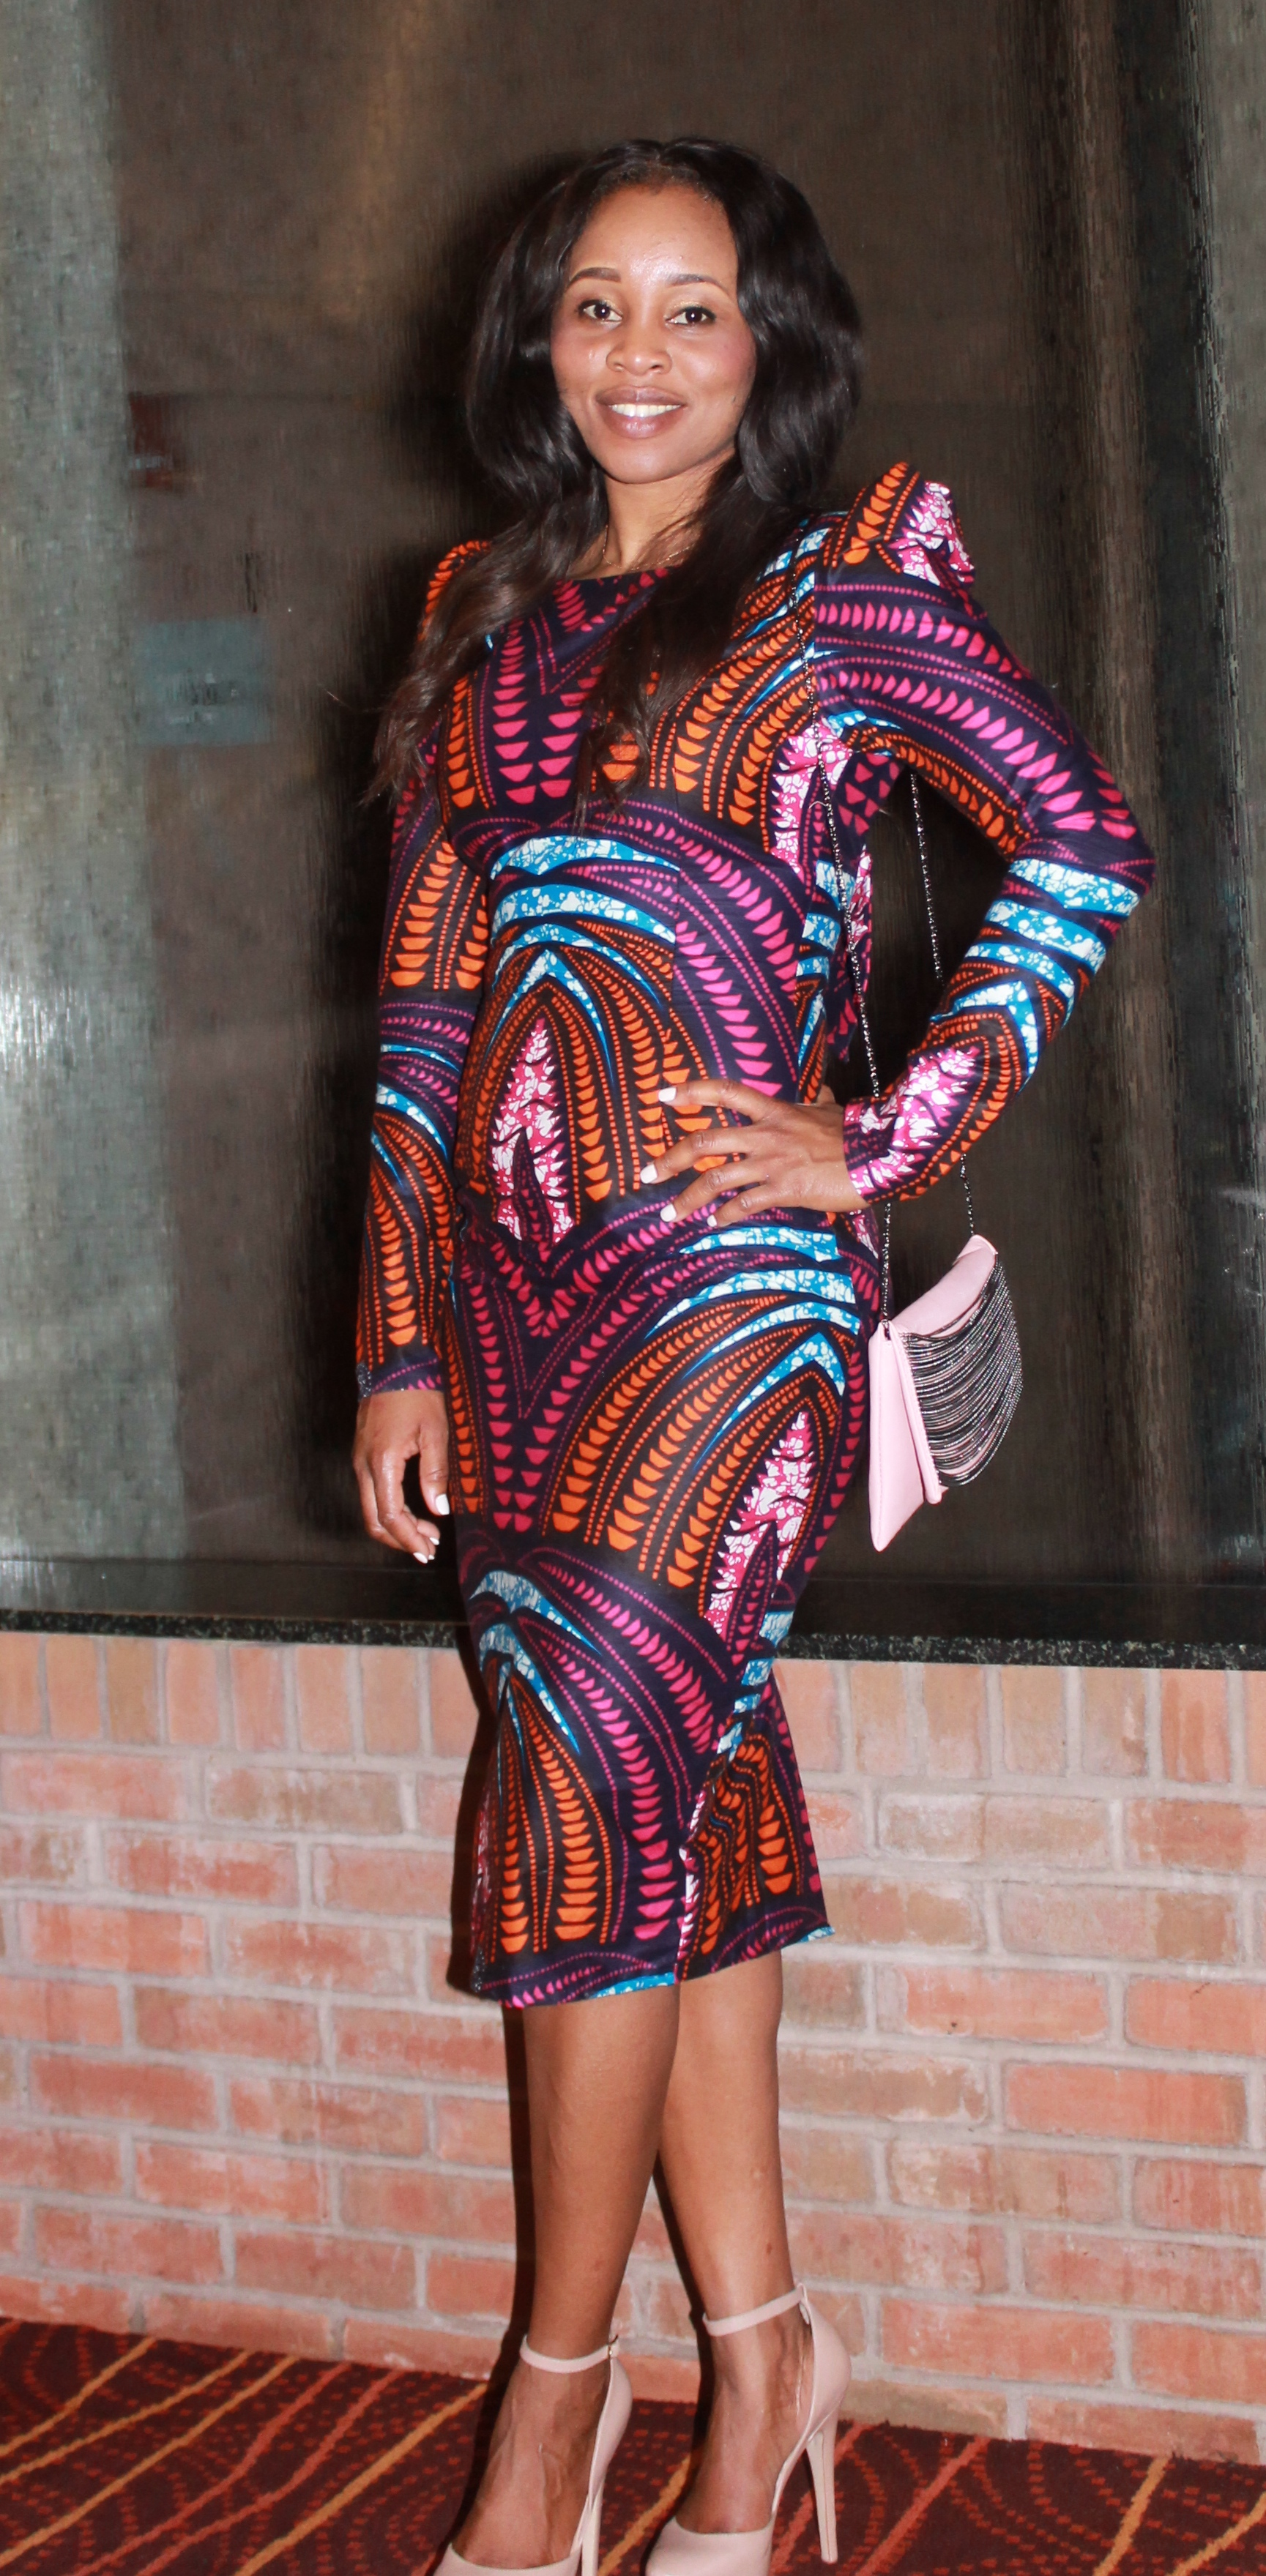 Lovely structured bodycon dress in a vibrant cotton print. Everything from her nail color to her bag choice is popping!